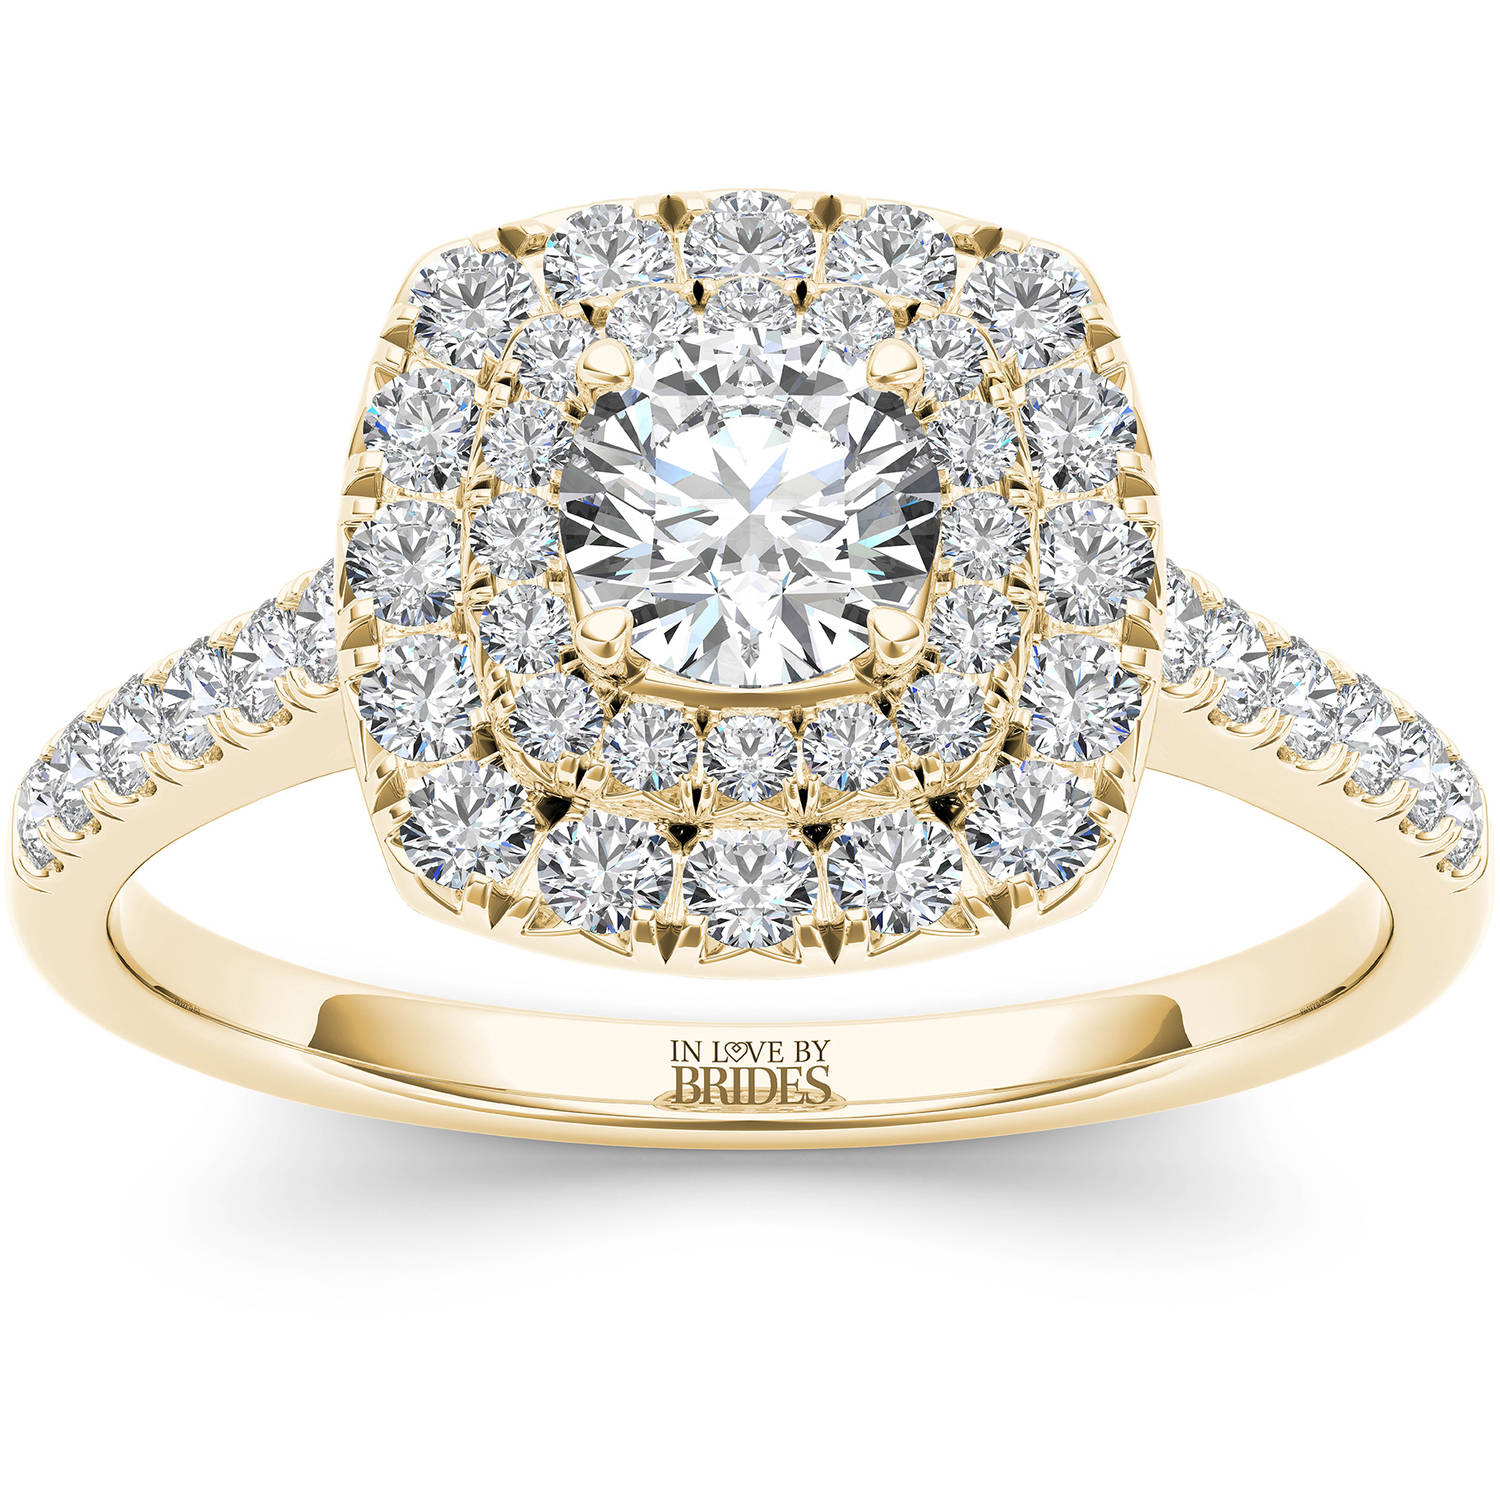 IN LOVE BY BRIDES 1.00 Carat T.W. Certified Diamond Cushion Double Halo 14kt Yellow Gold Engagement Ring